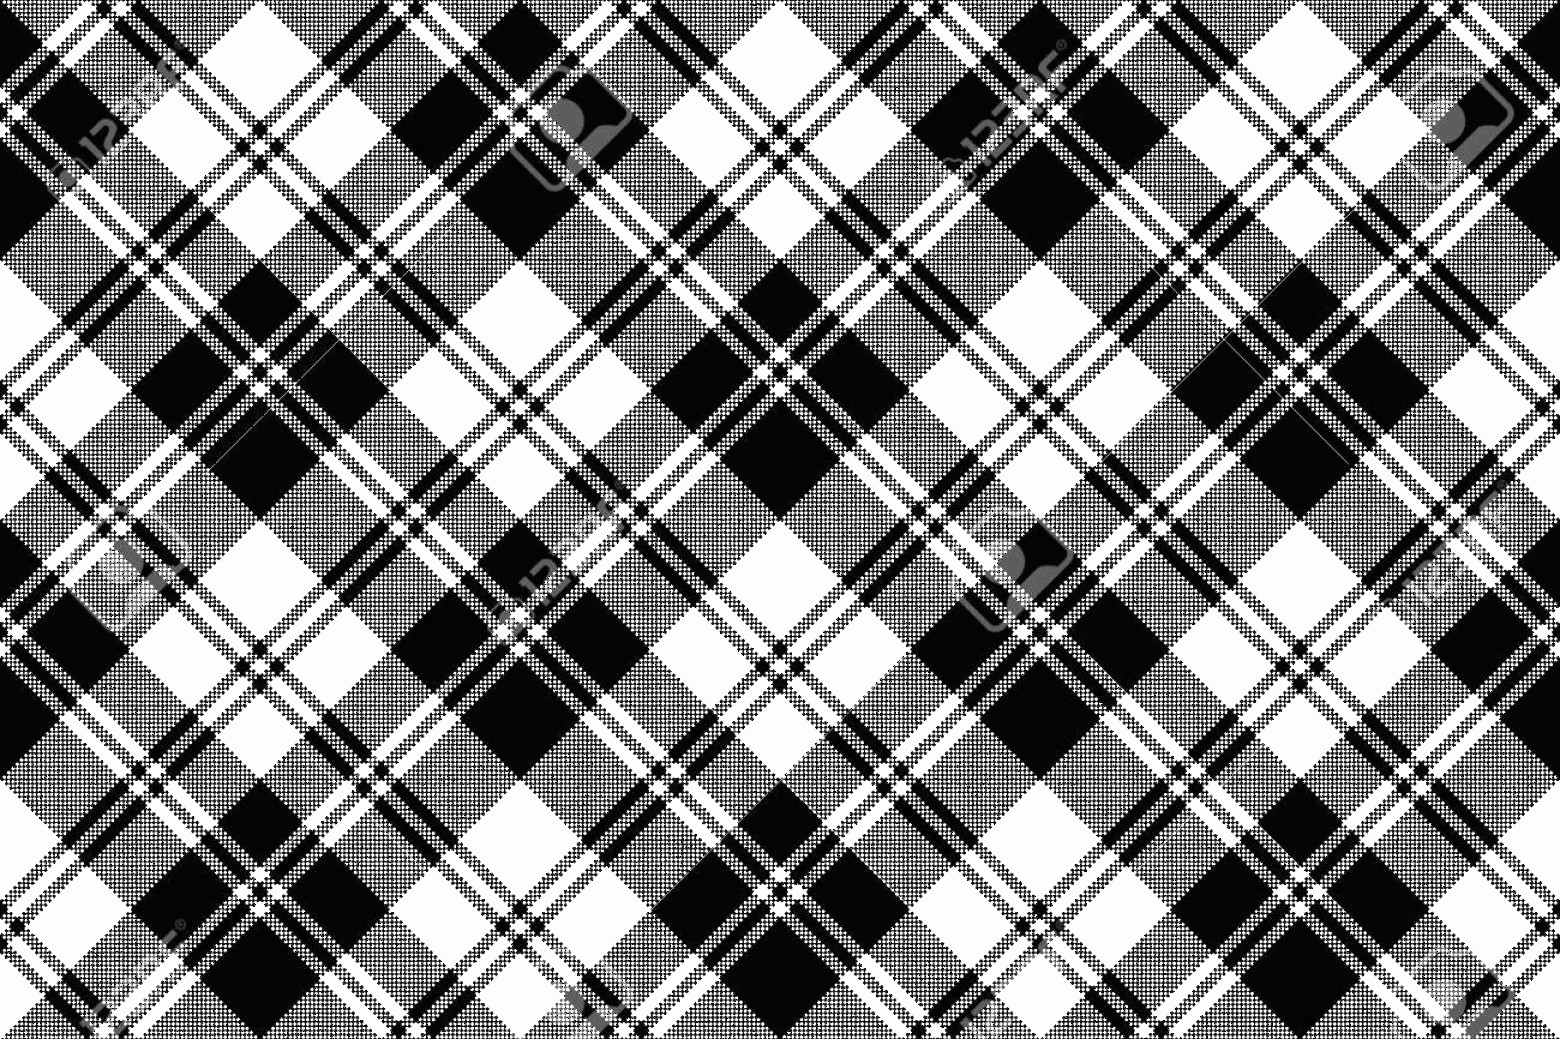 Plaid Vector: Photostock Vector Plaid Black White Tartan Classic Seamless Pattern Vector Illustration